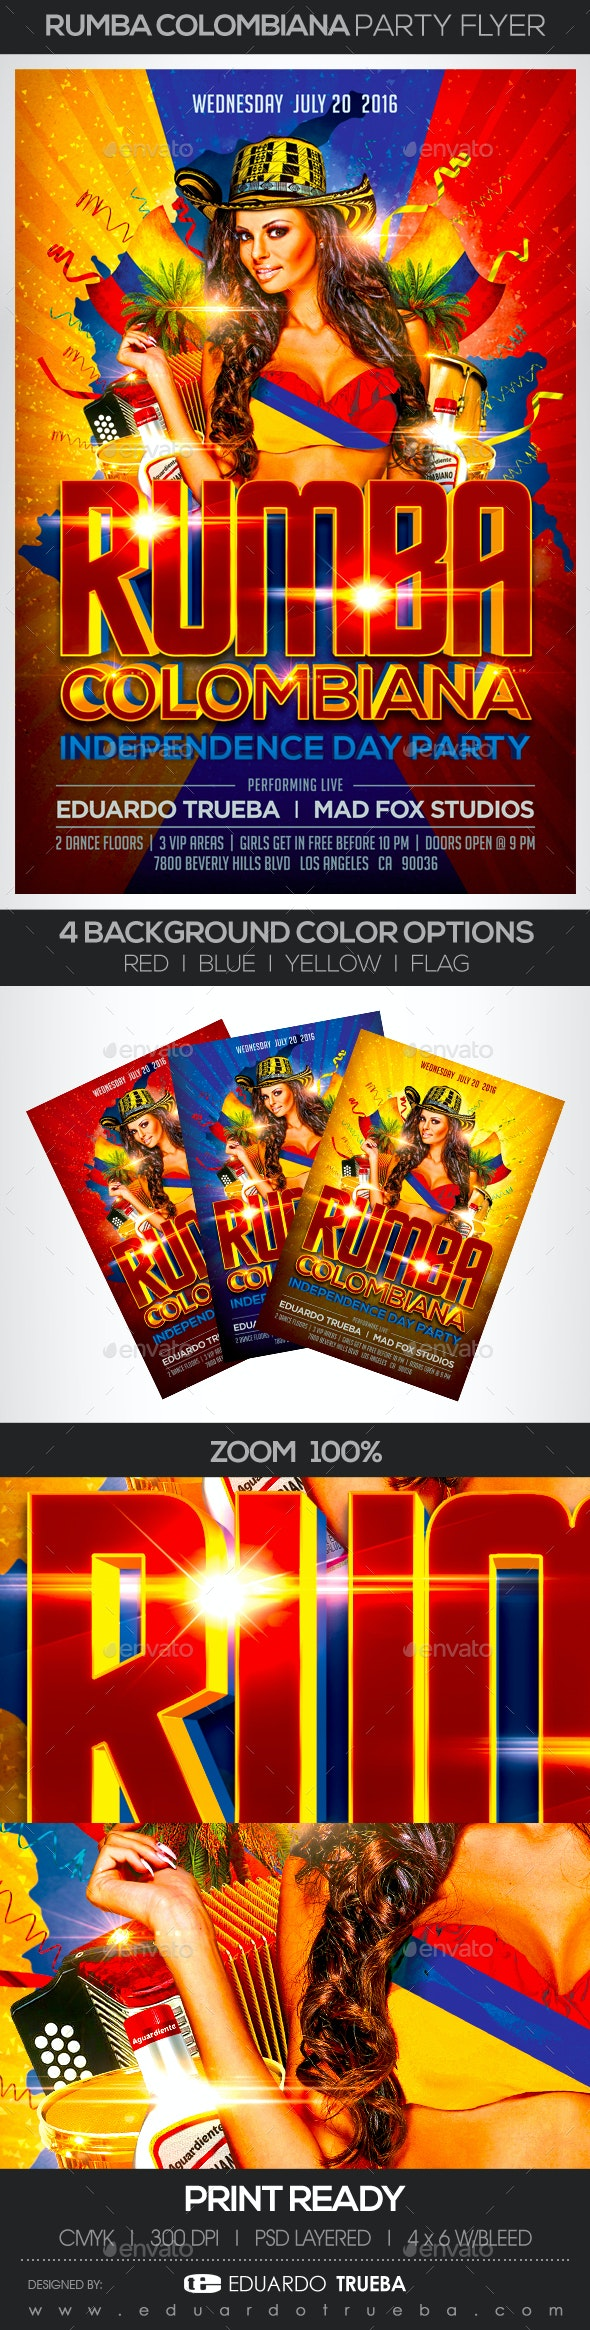 Rumba Colombiana Independence Day Party Flyer